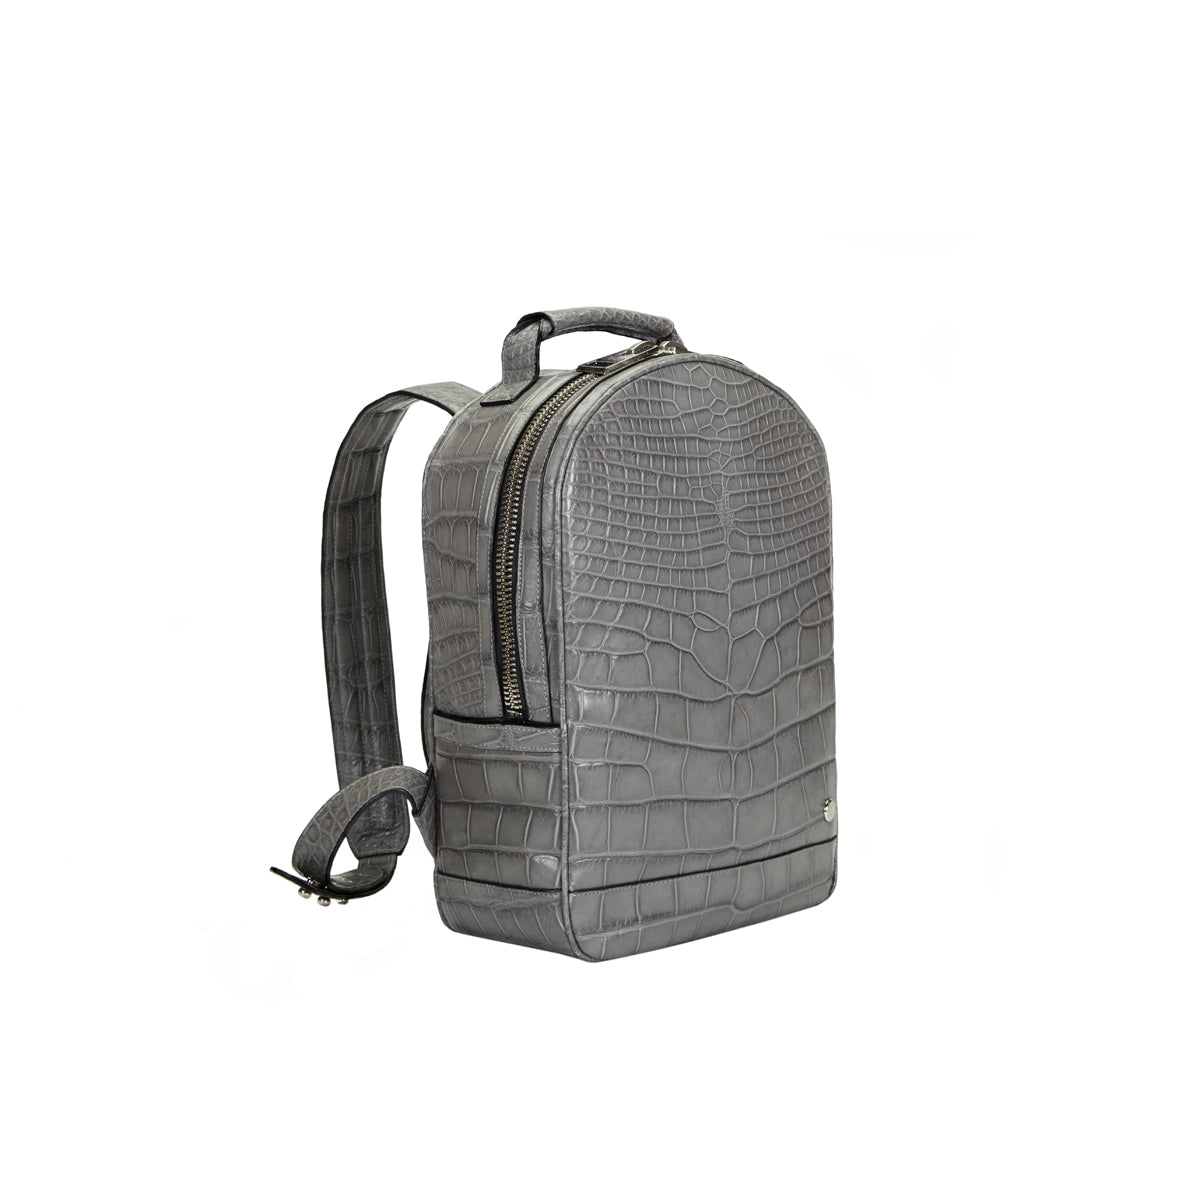 Brighton Flat Front Backpack Medium - Grey Alligator